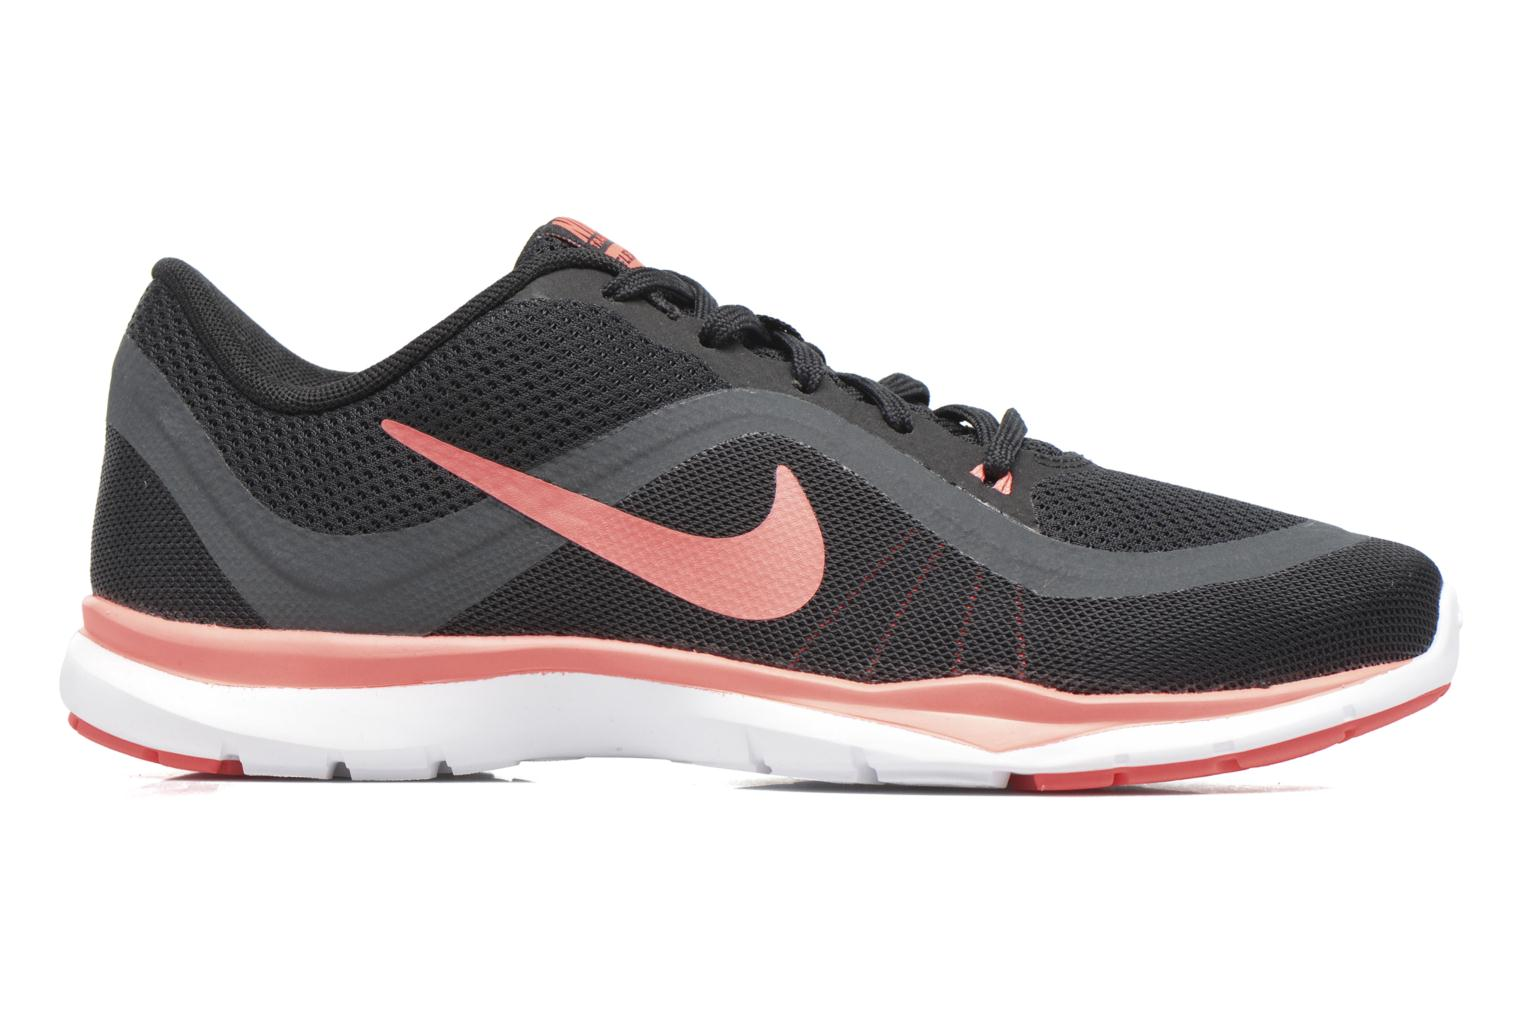 W Nike Flex Supreme Tr 5 Fade RACER PINK/PURE PLATINUM-SUNSET GLOW